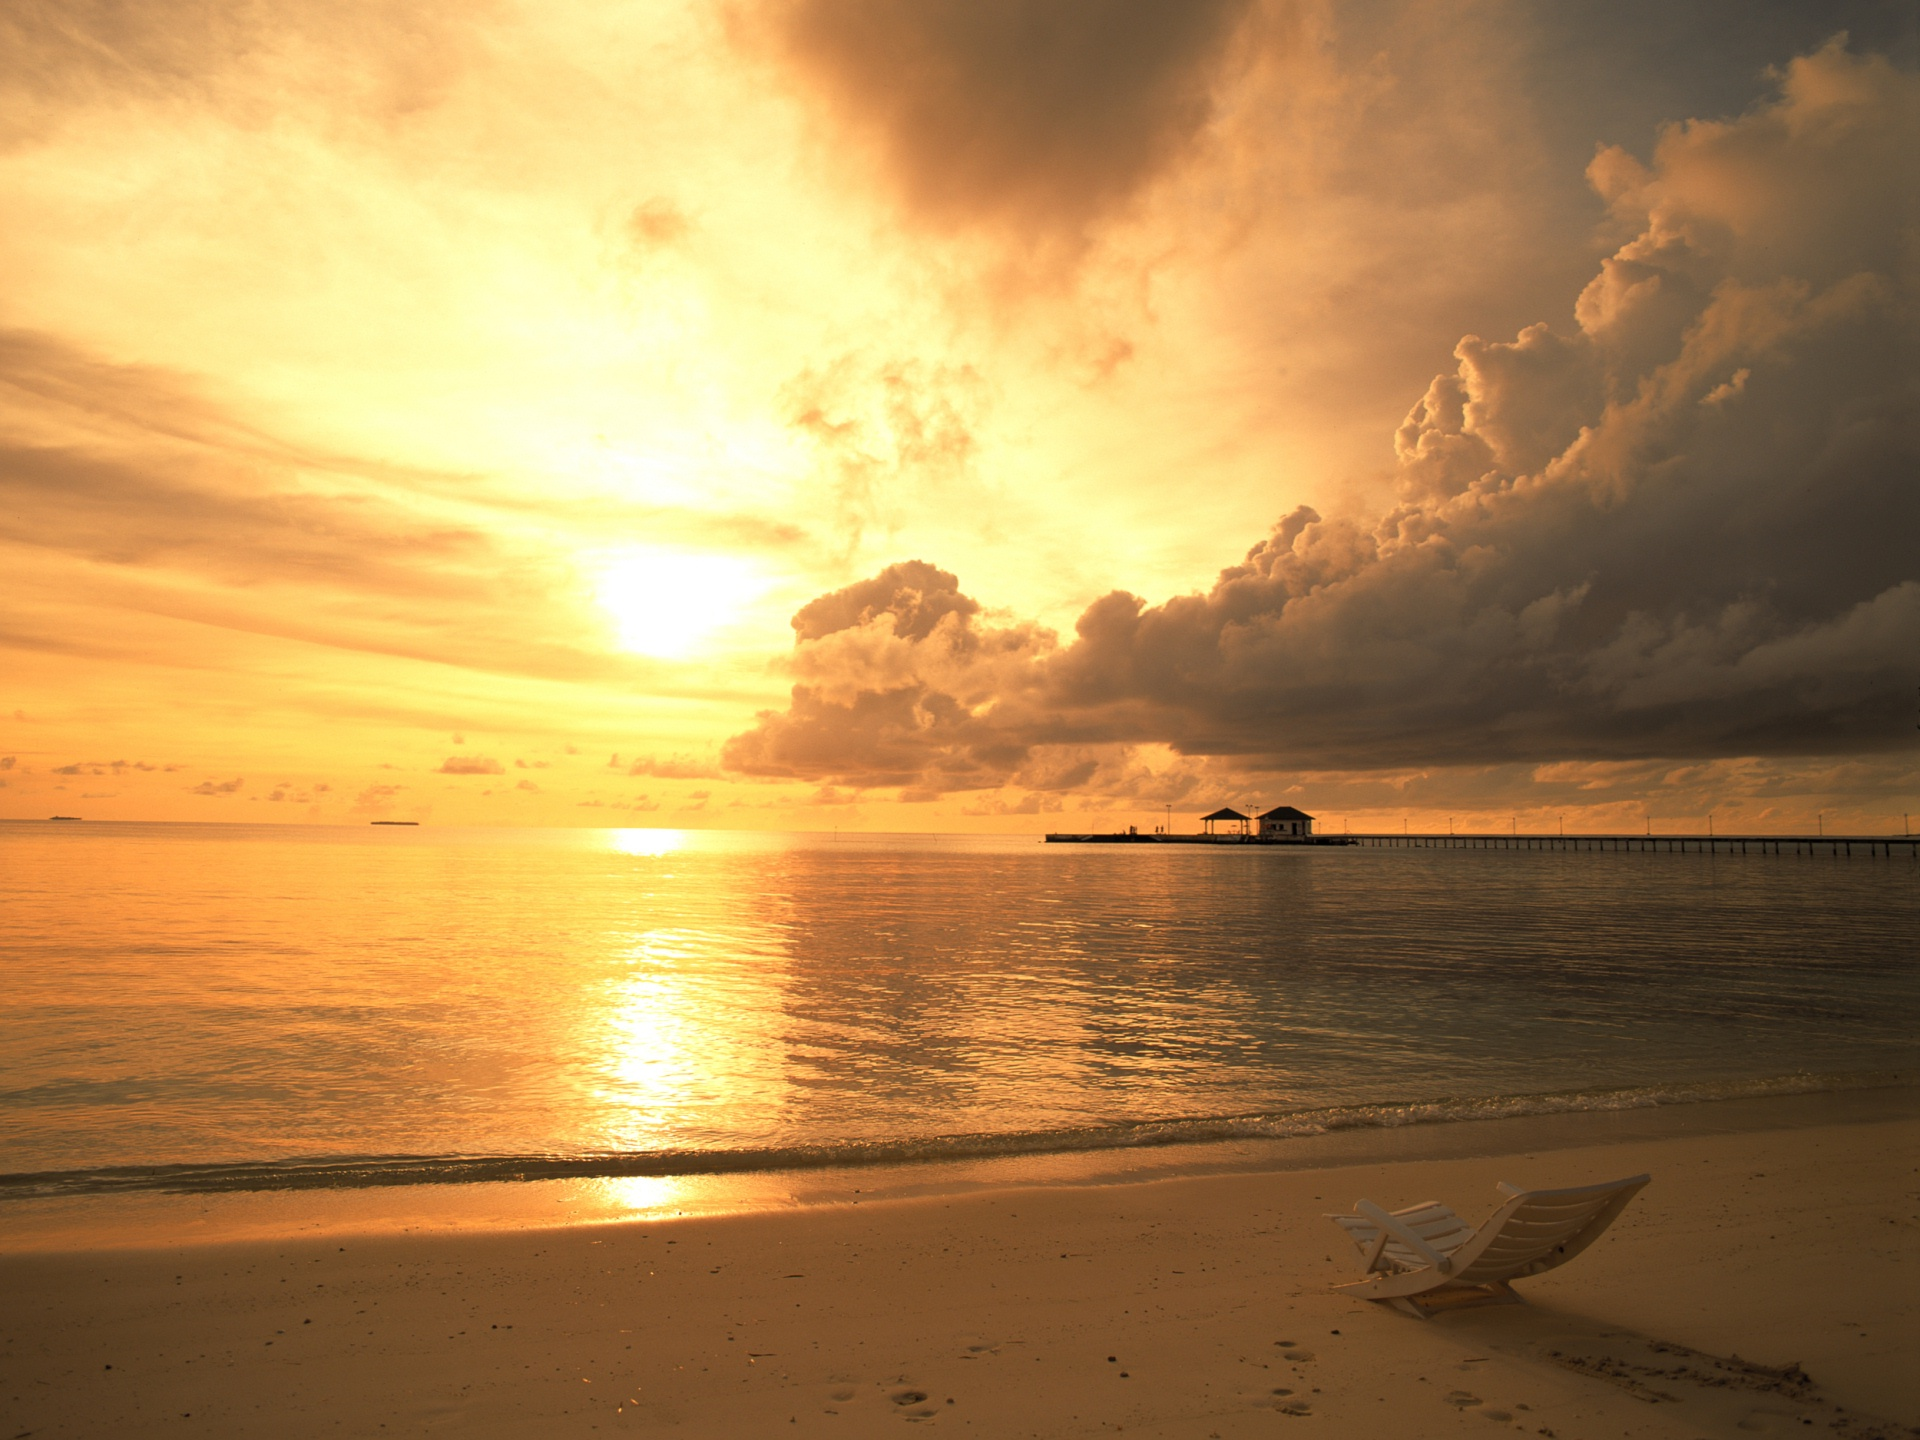 Empty Sea Beach at Sunset (click to view)